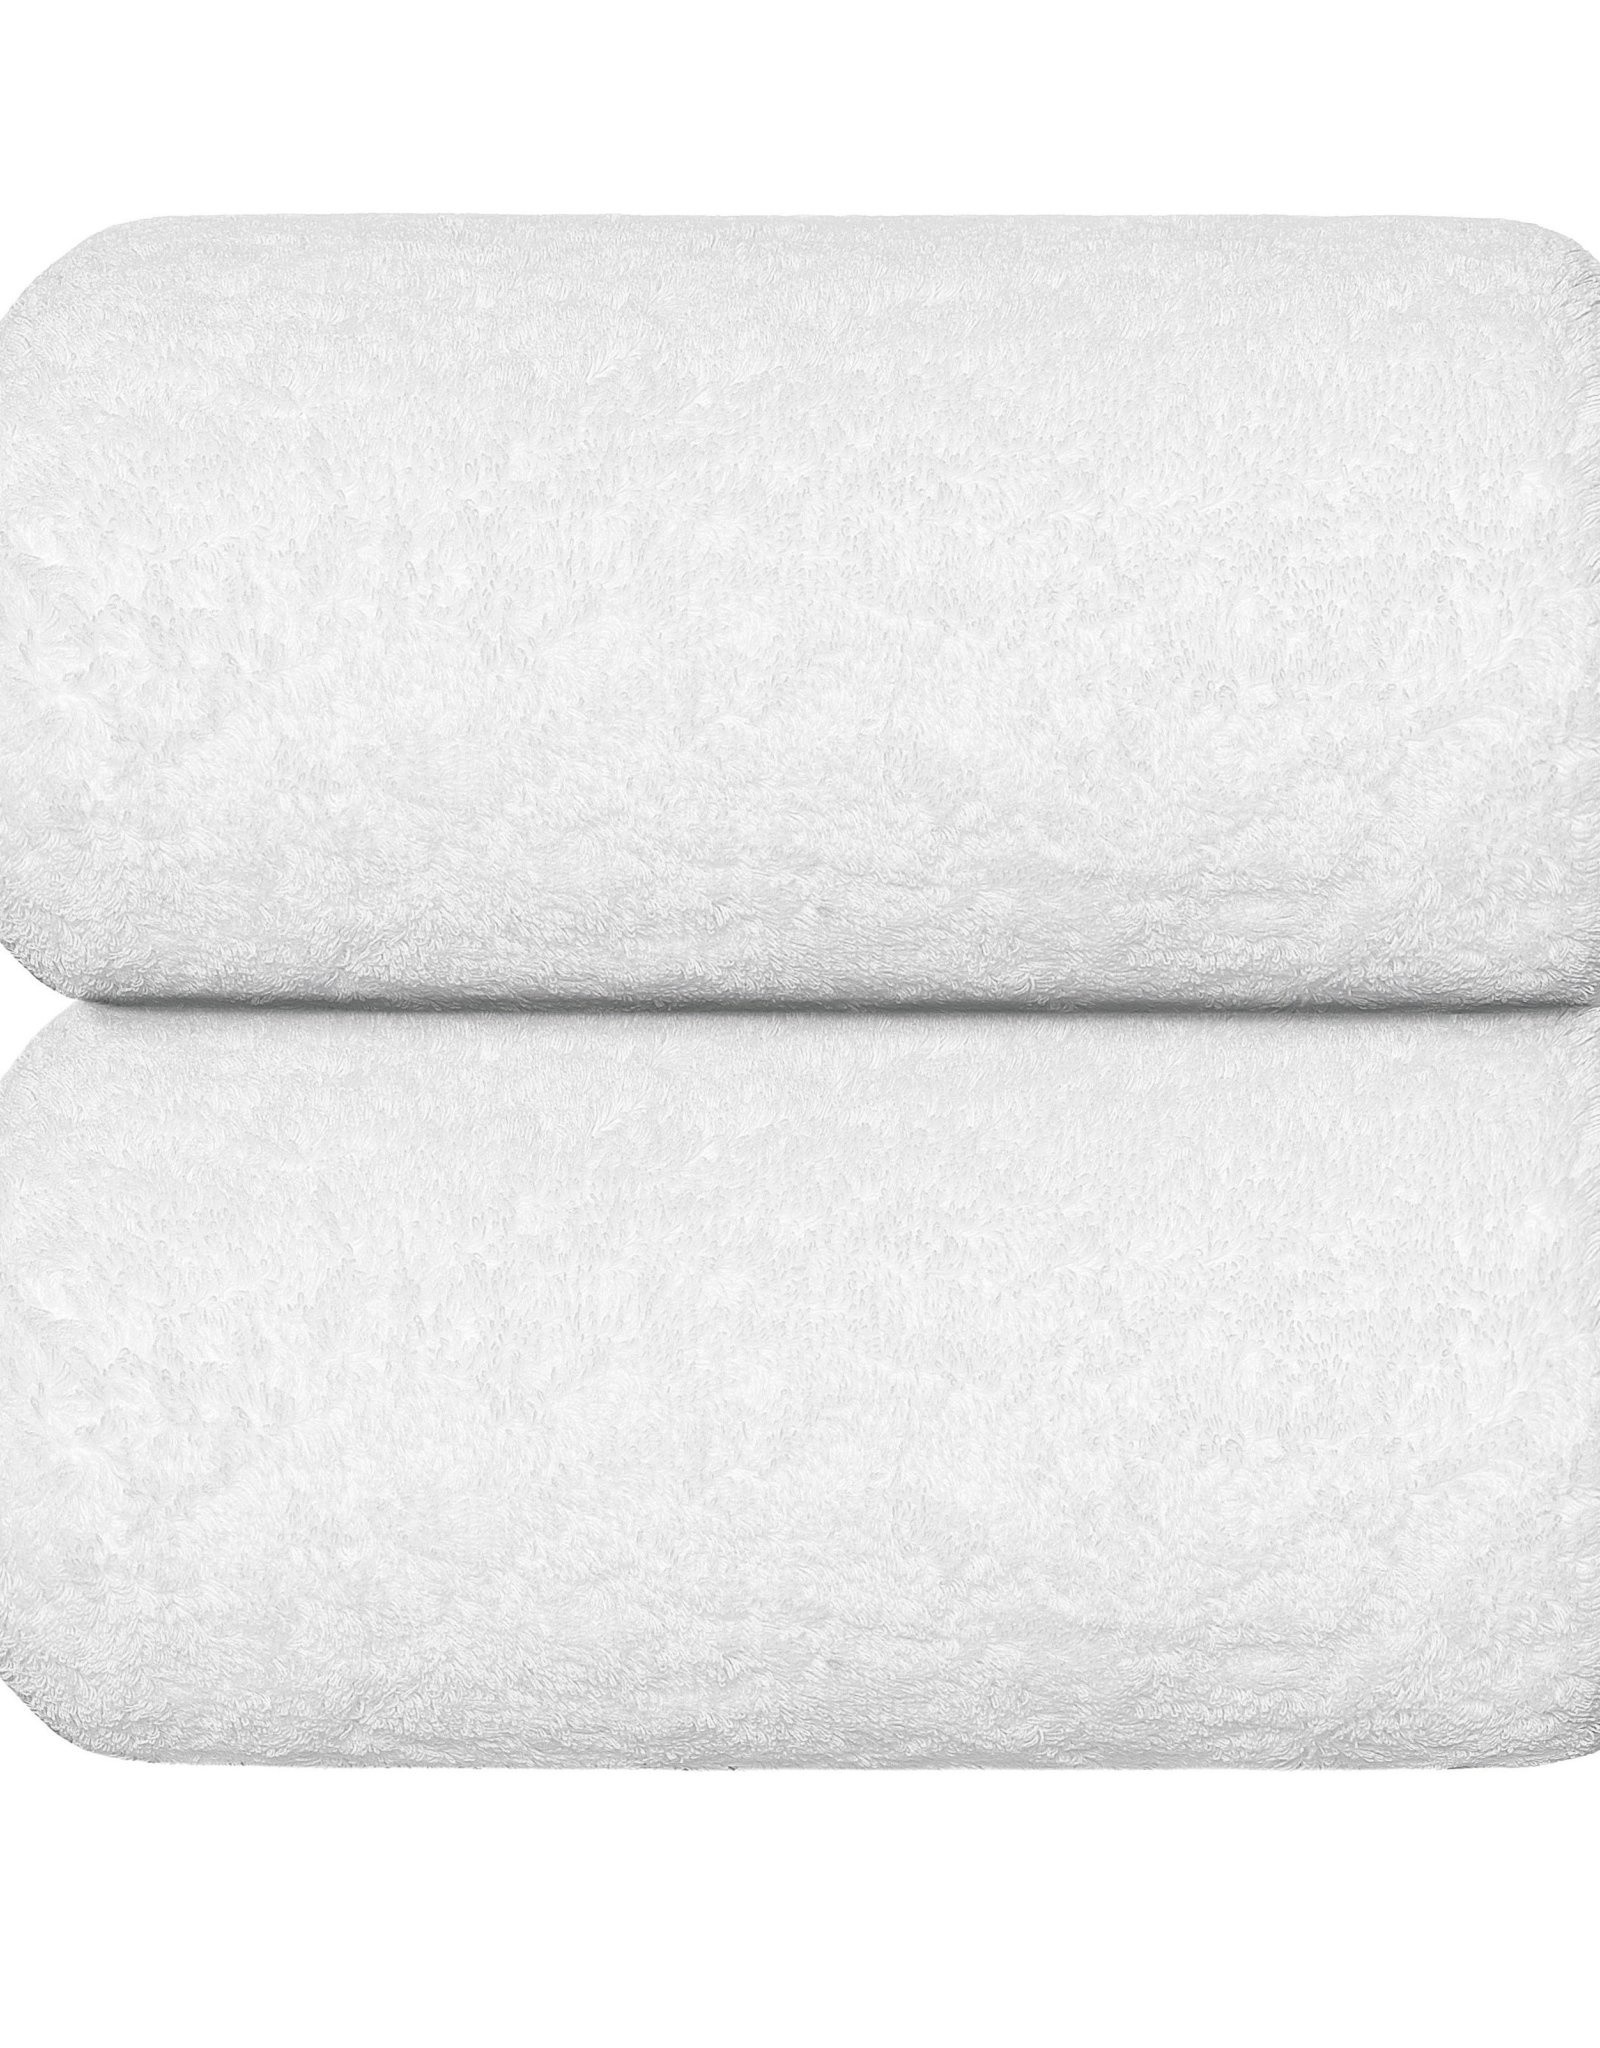 Graccioza Egoist Giza Bath Towels